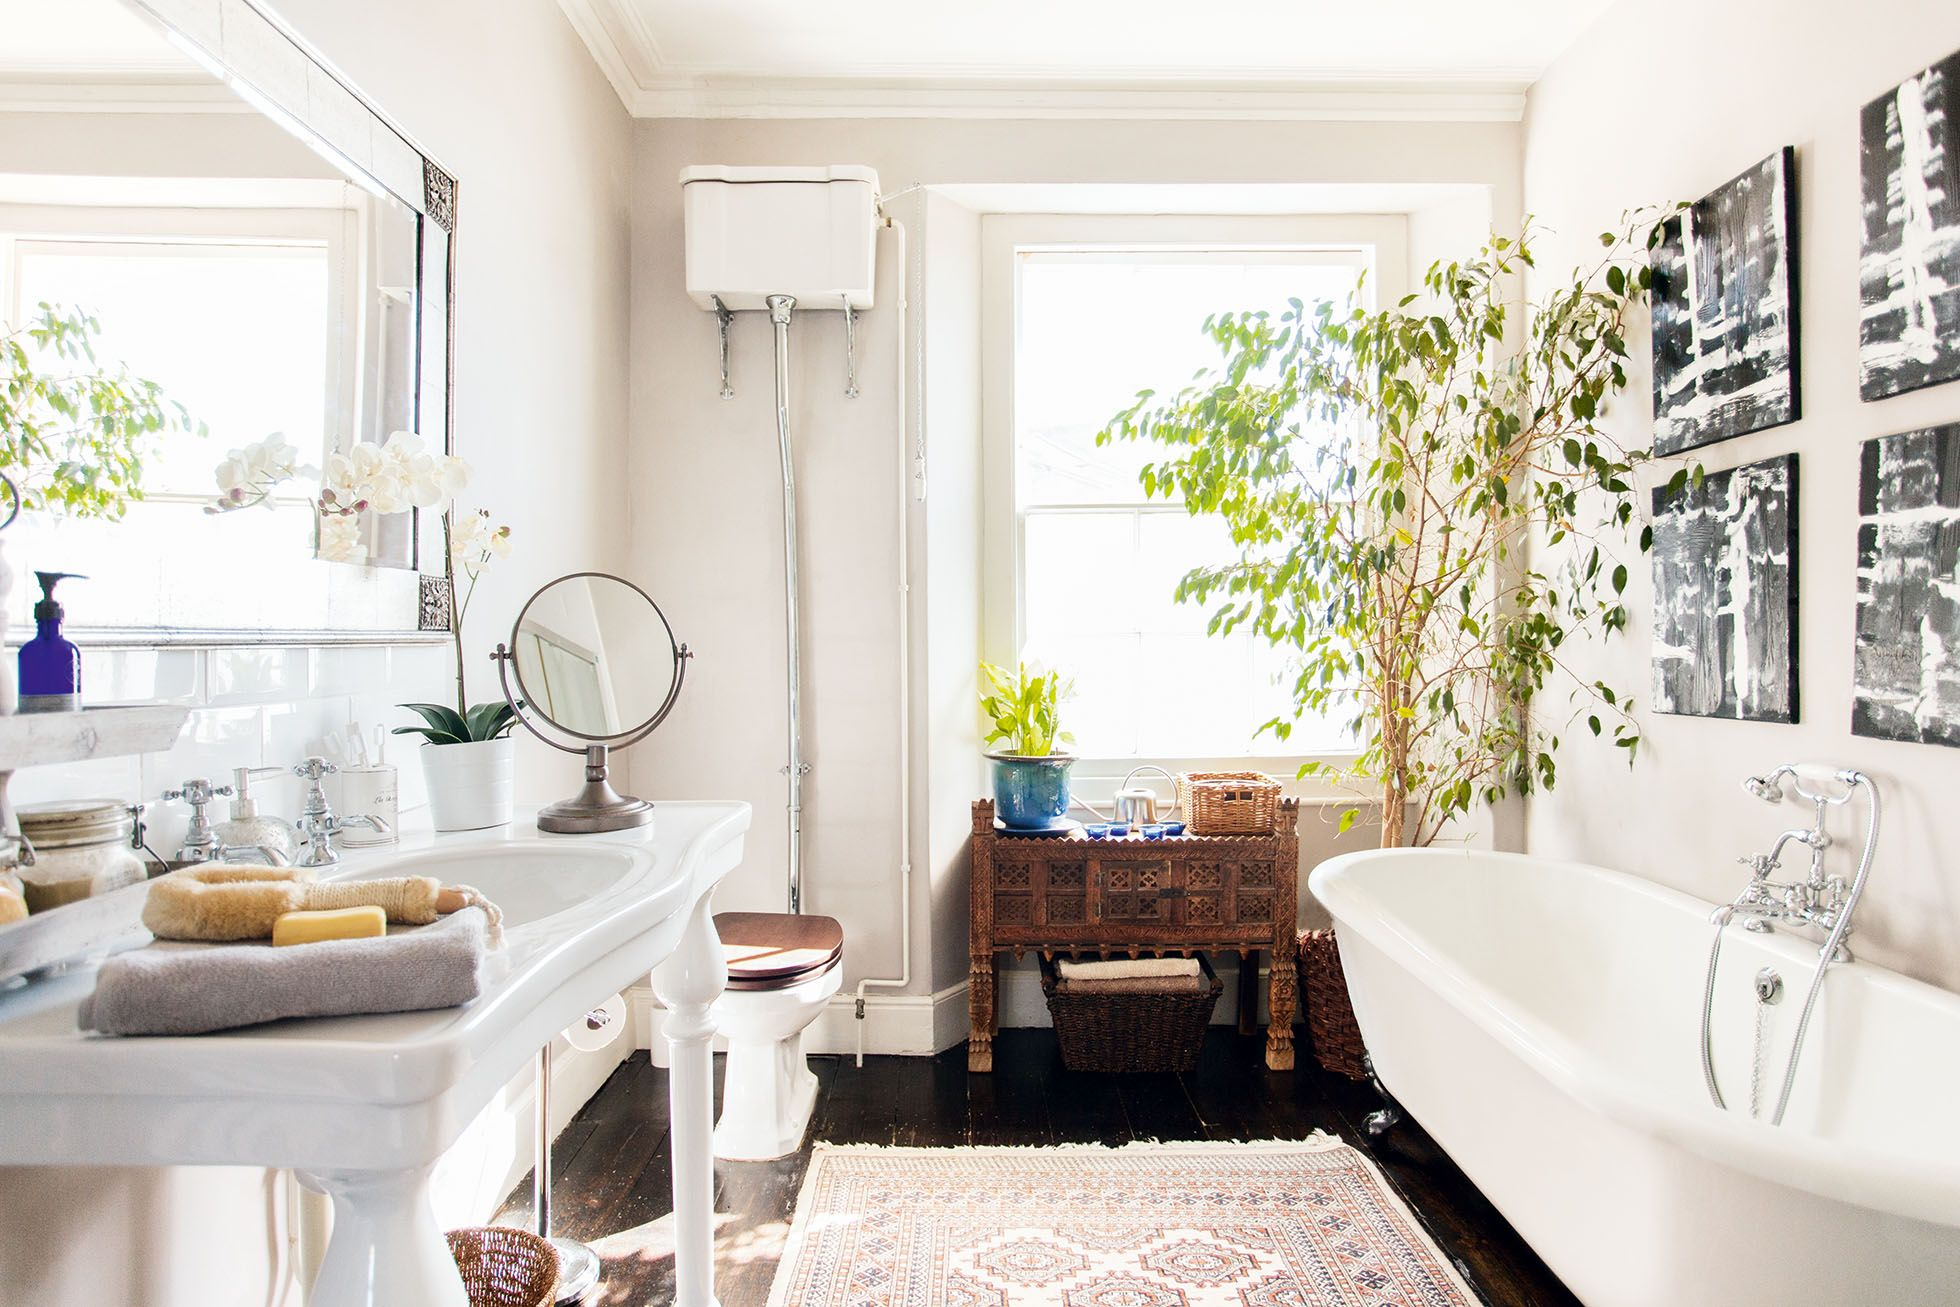 Angela Rowe and Alex Lock have updated their family bathroom with ...